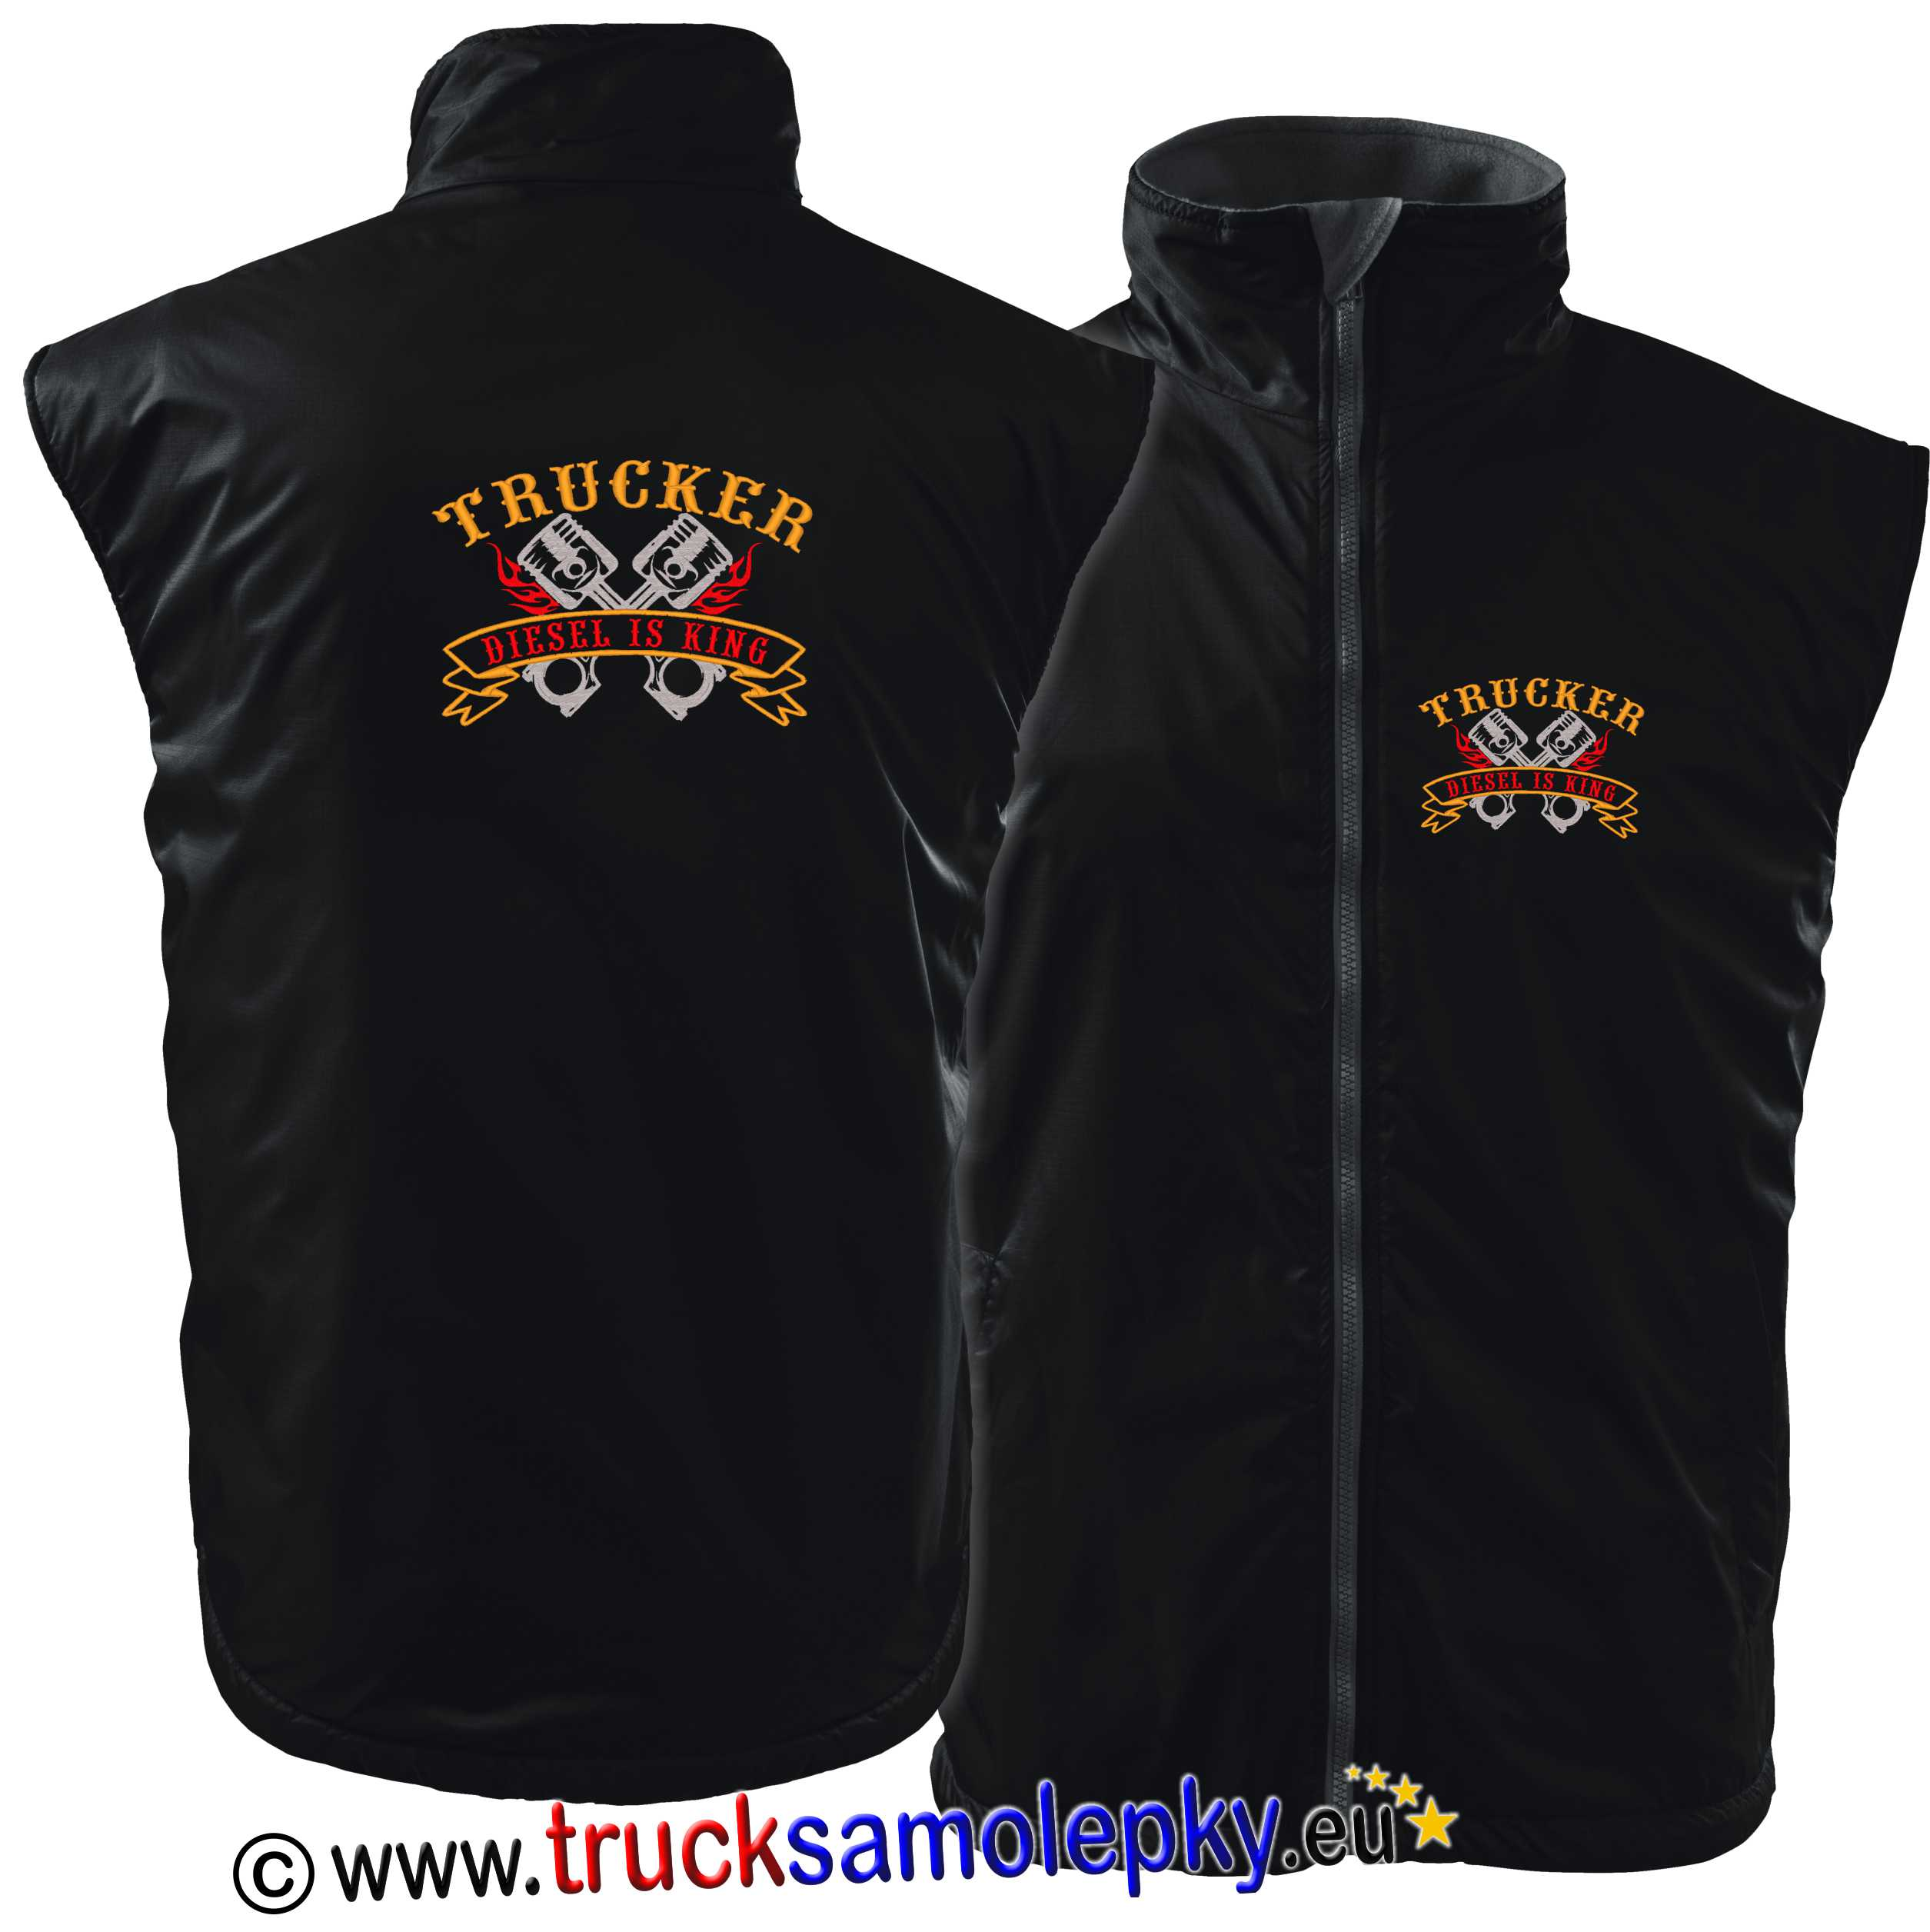 Vesta body warmer TRUCKER DIESEL IS KING